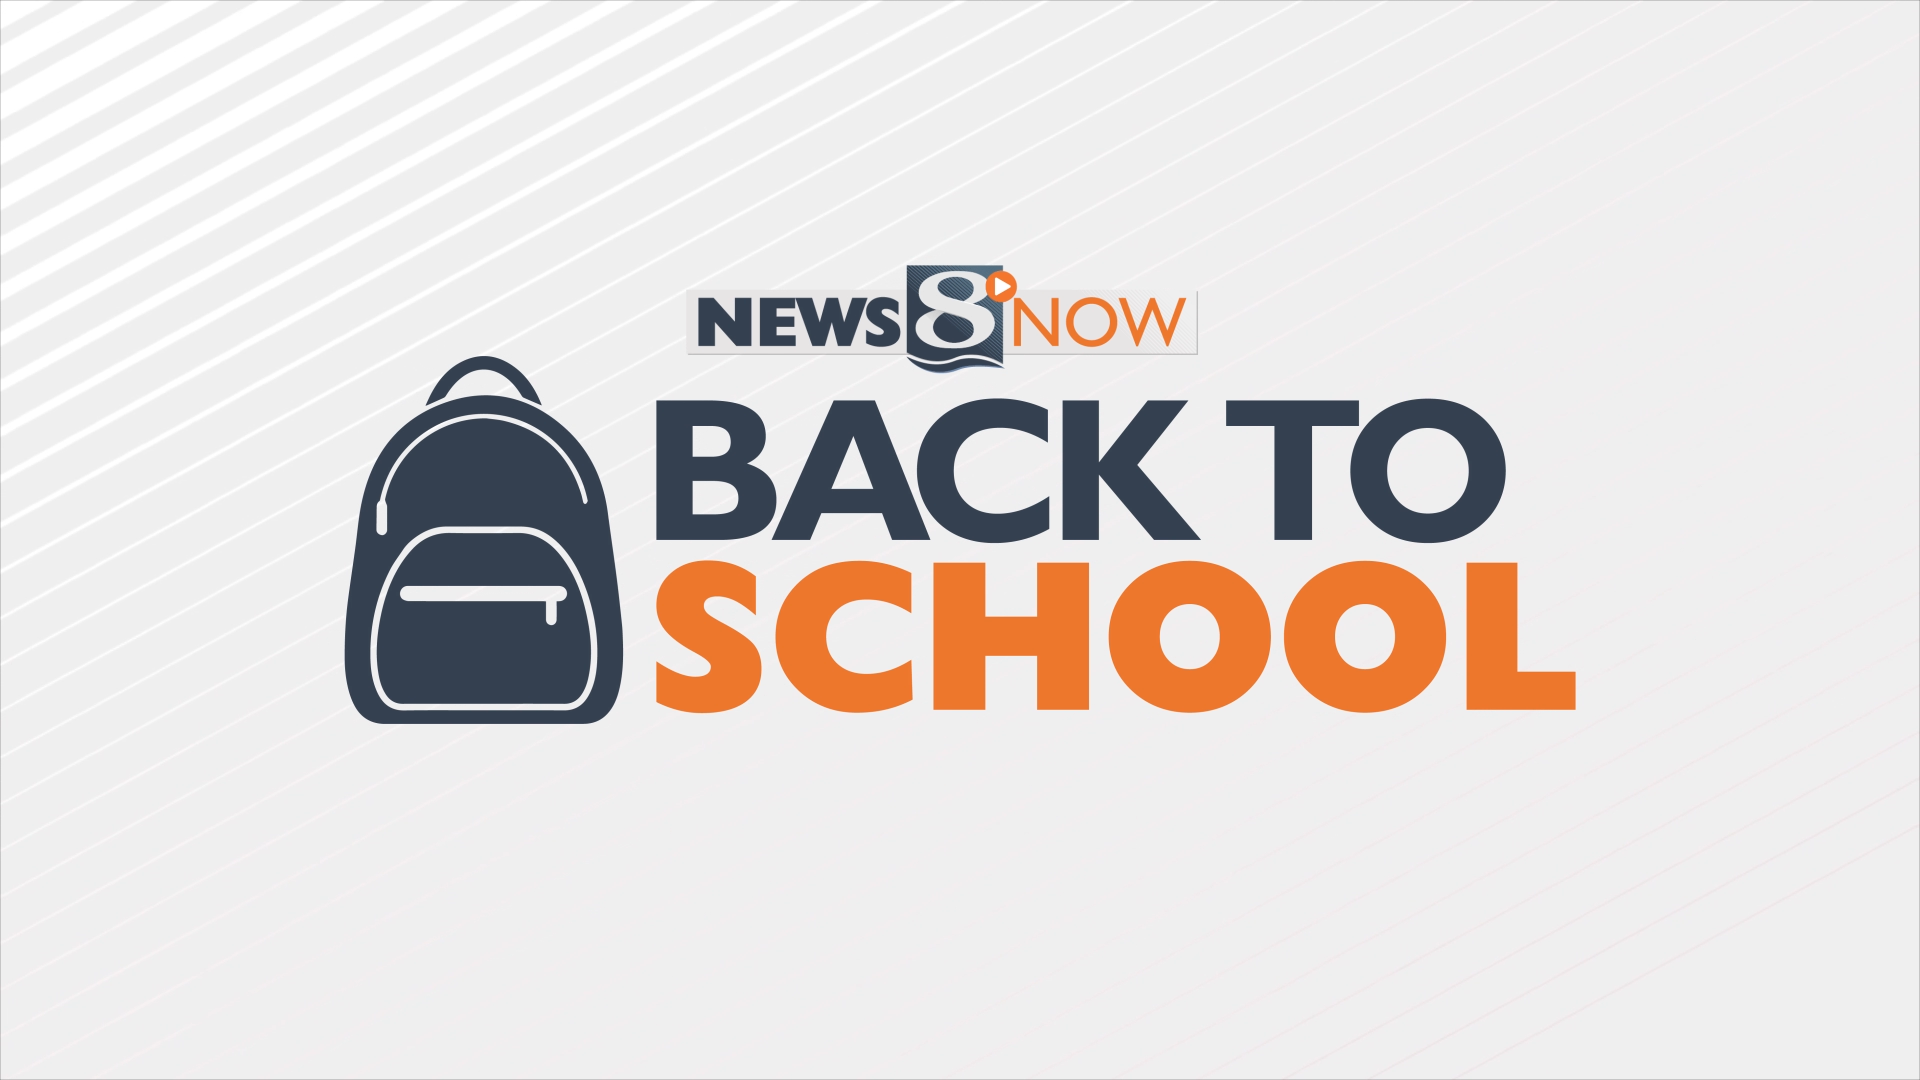 News 8 Now Back to School graphic